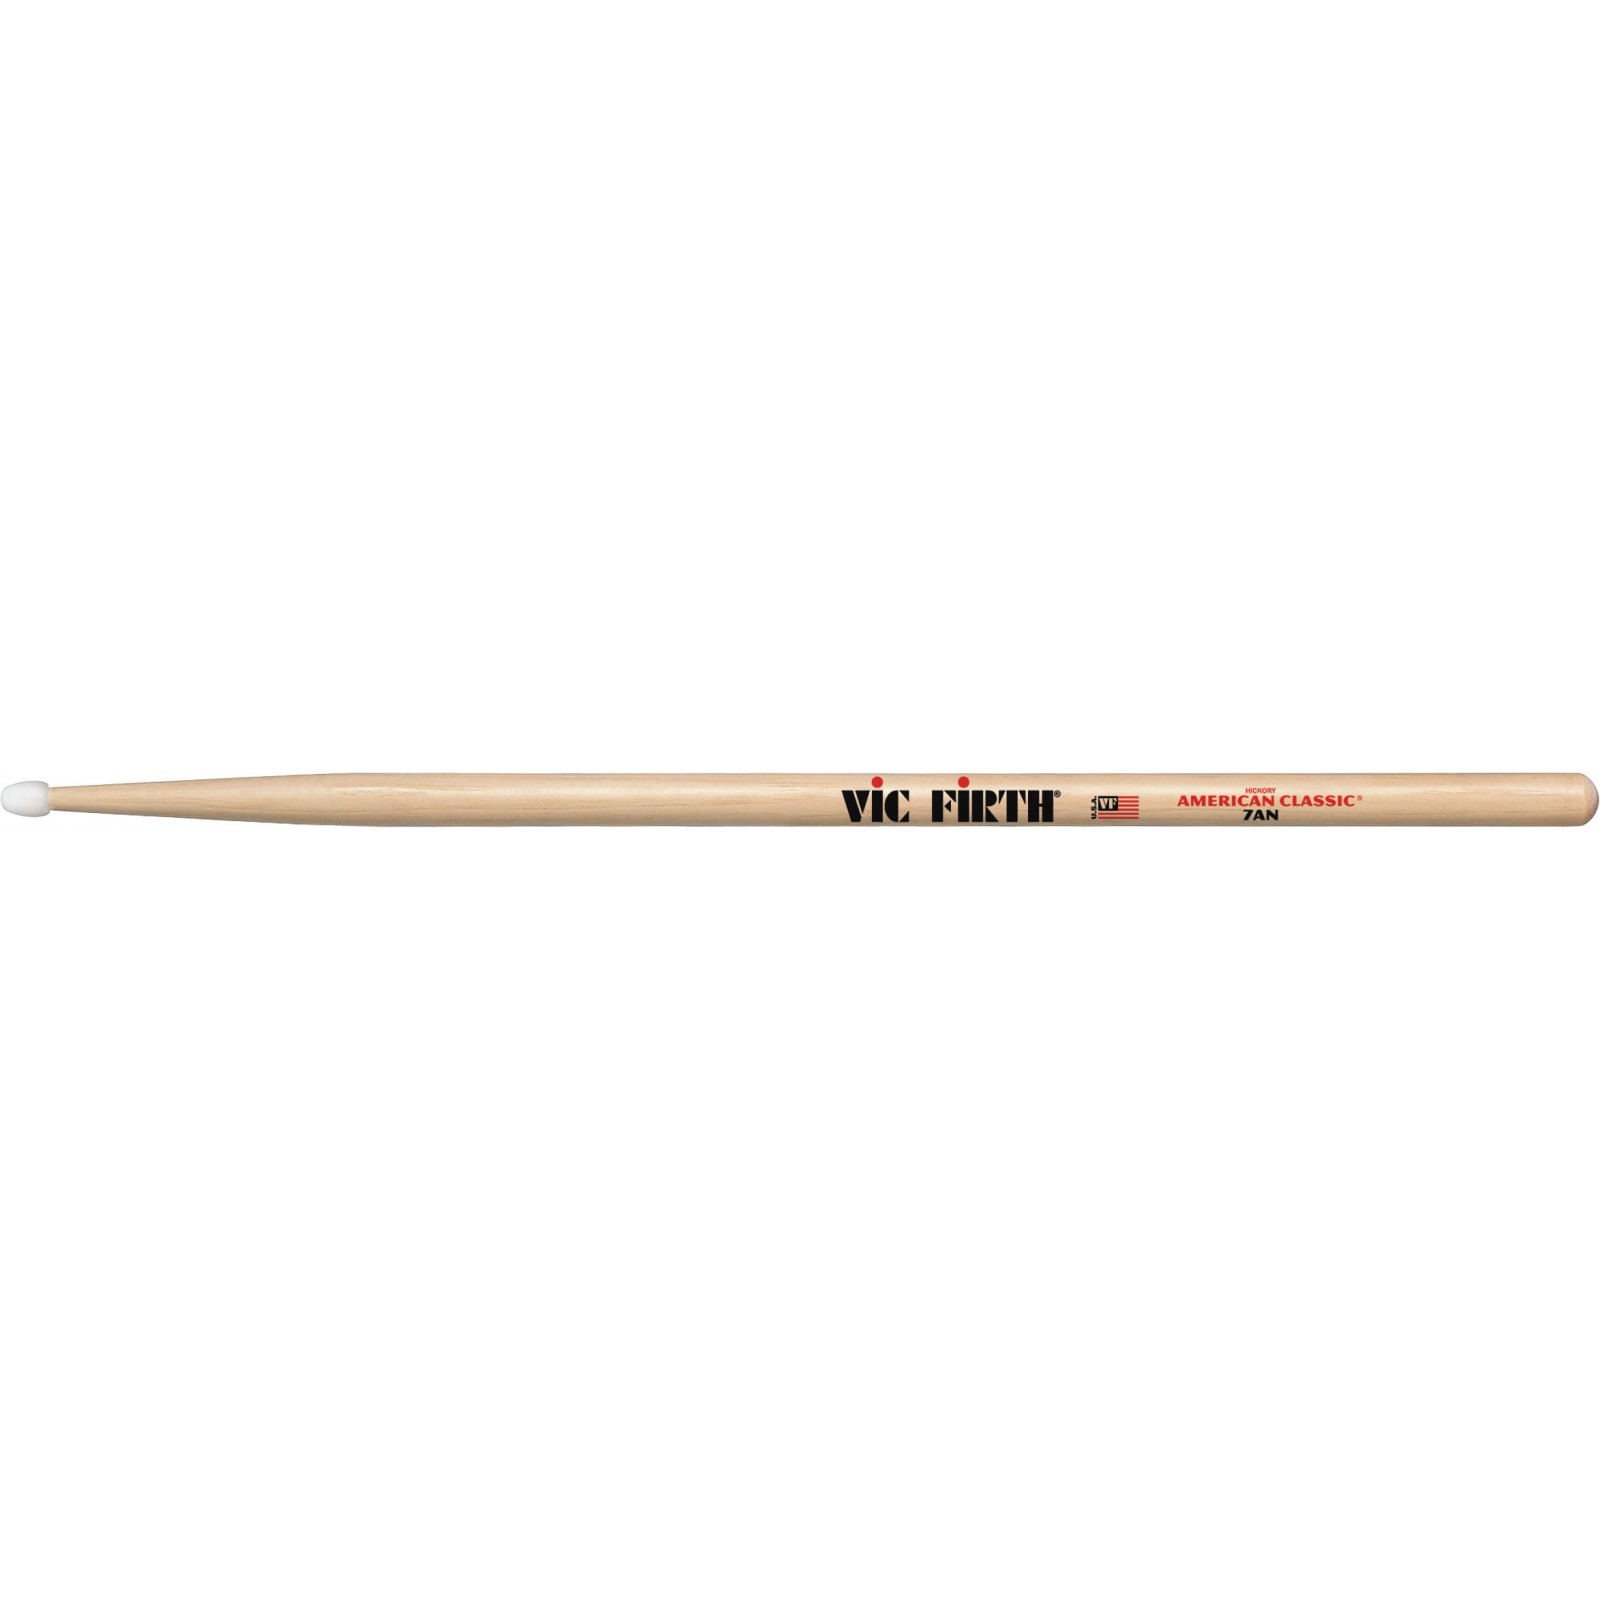 Vic Firth American Classic 7an Nylon Tip Drum Sticks